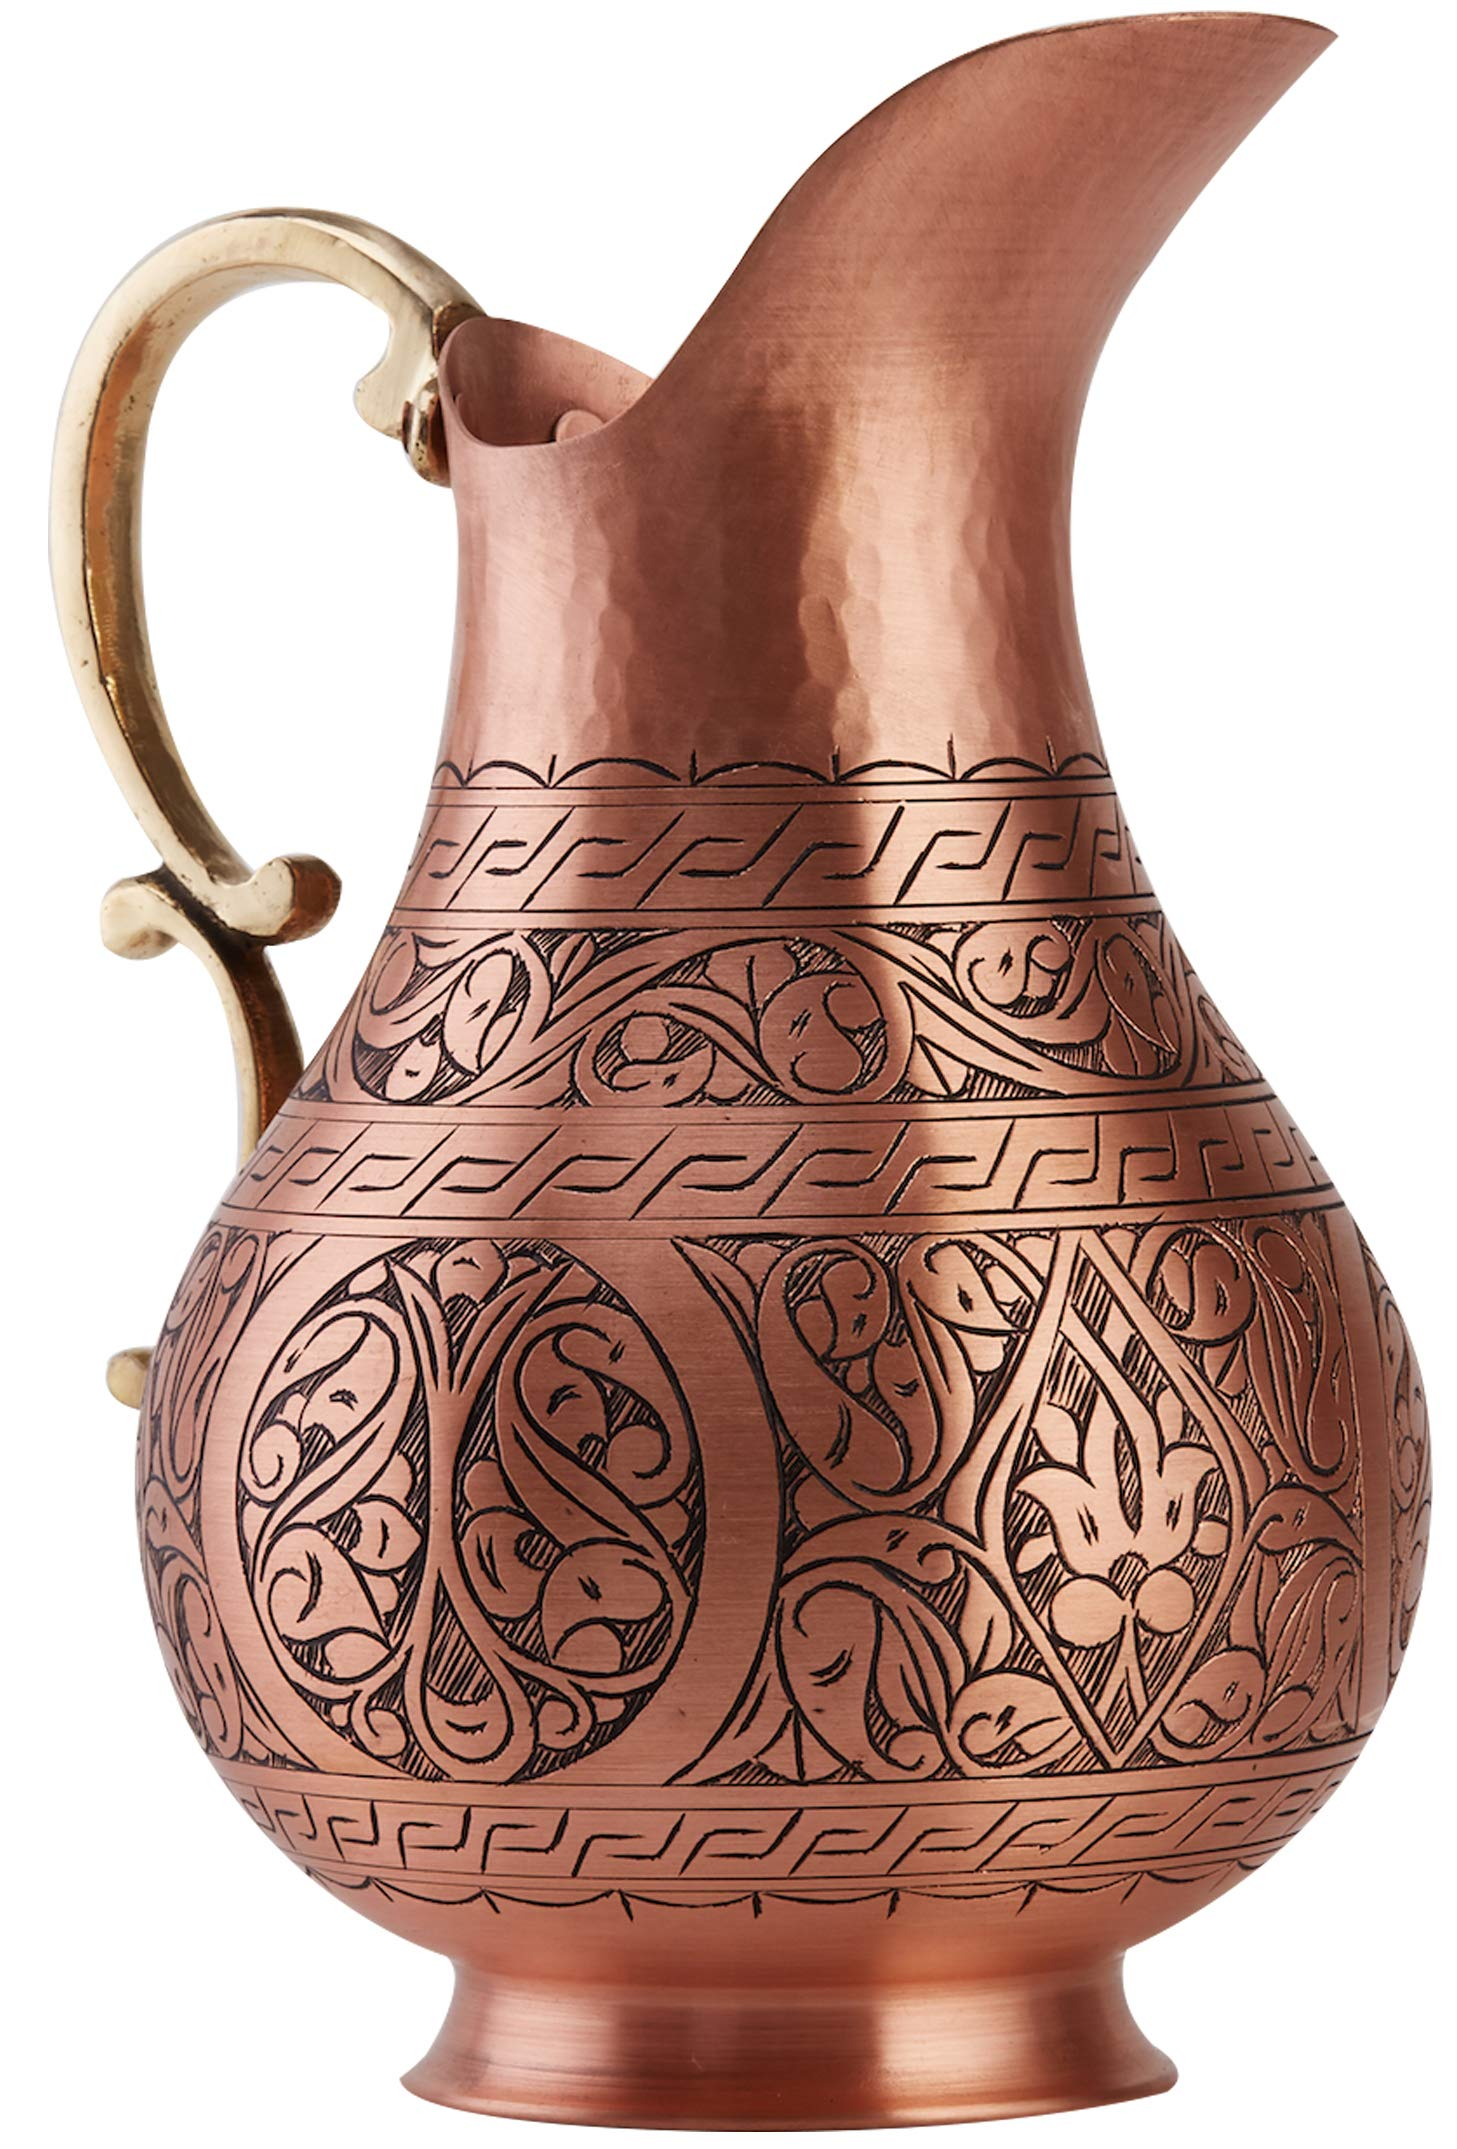 DEMMEX The Pitcher, 1mm Solid Copper Handmade Engraved Copper Pitcher Vessel Ayurveda Jug for Drinking Water, Moscow Mule, Cocktail (Matte-Engraved) by DEMMEX (Image #2)